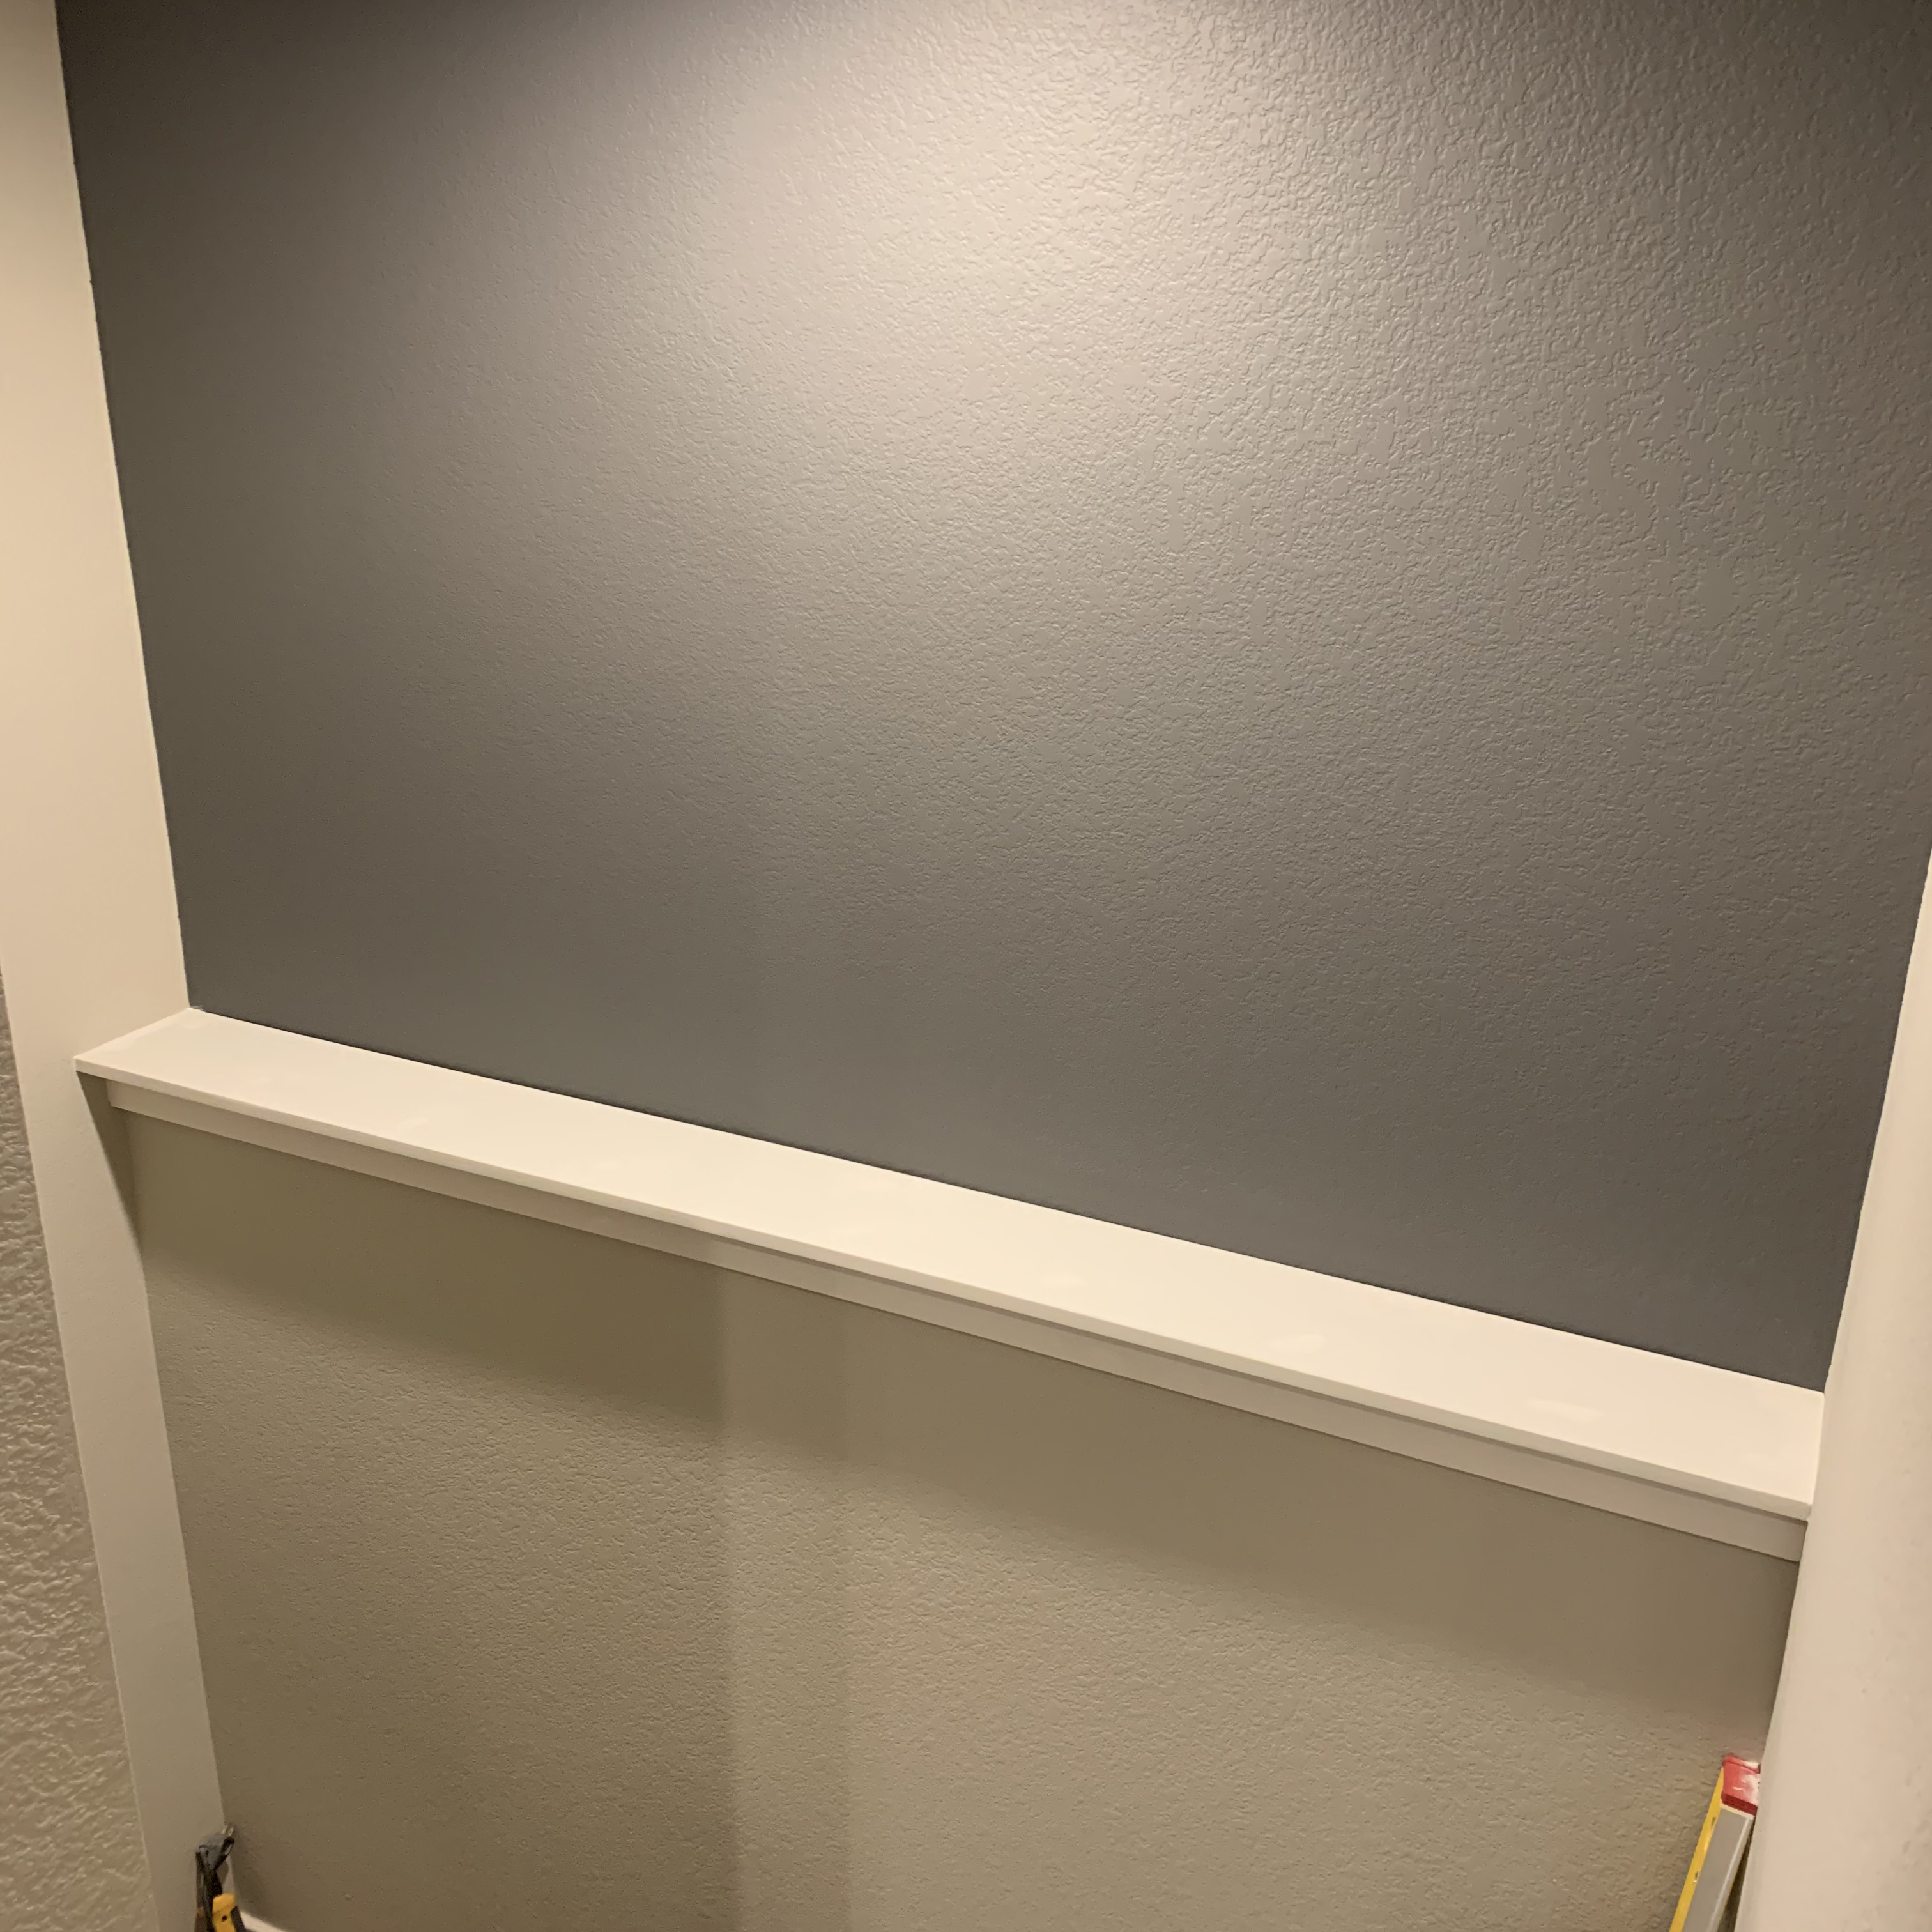 Before And After Photos Of A Beautiful Accent Wall Project